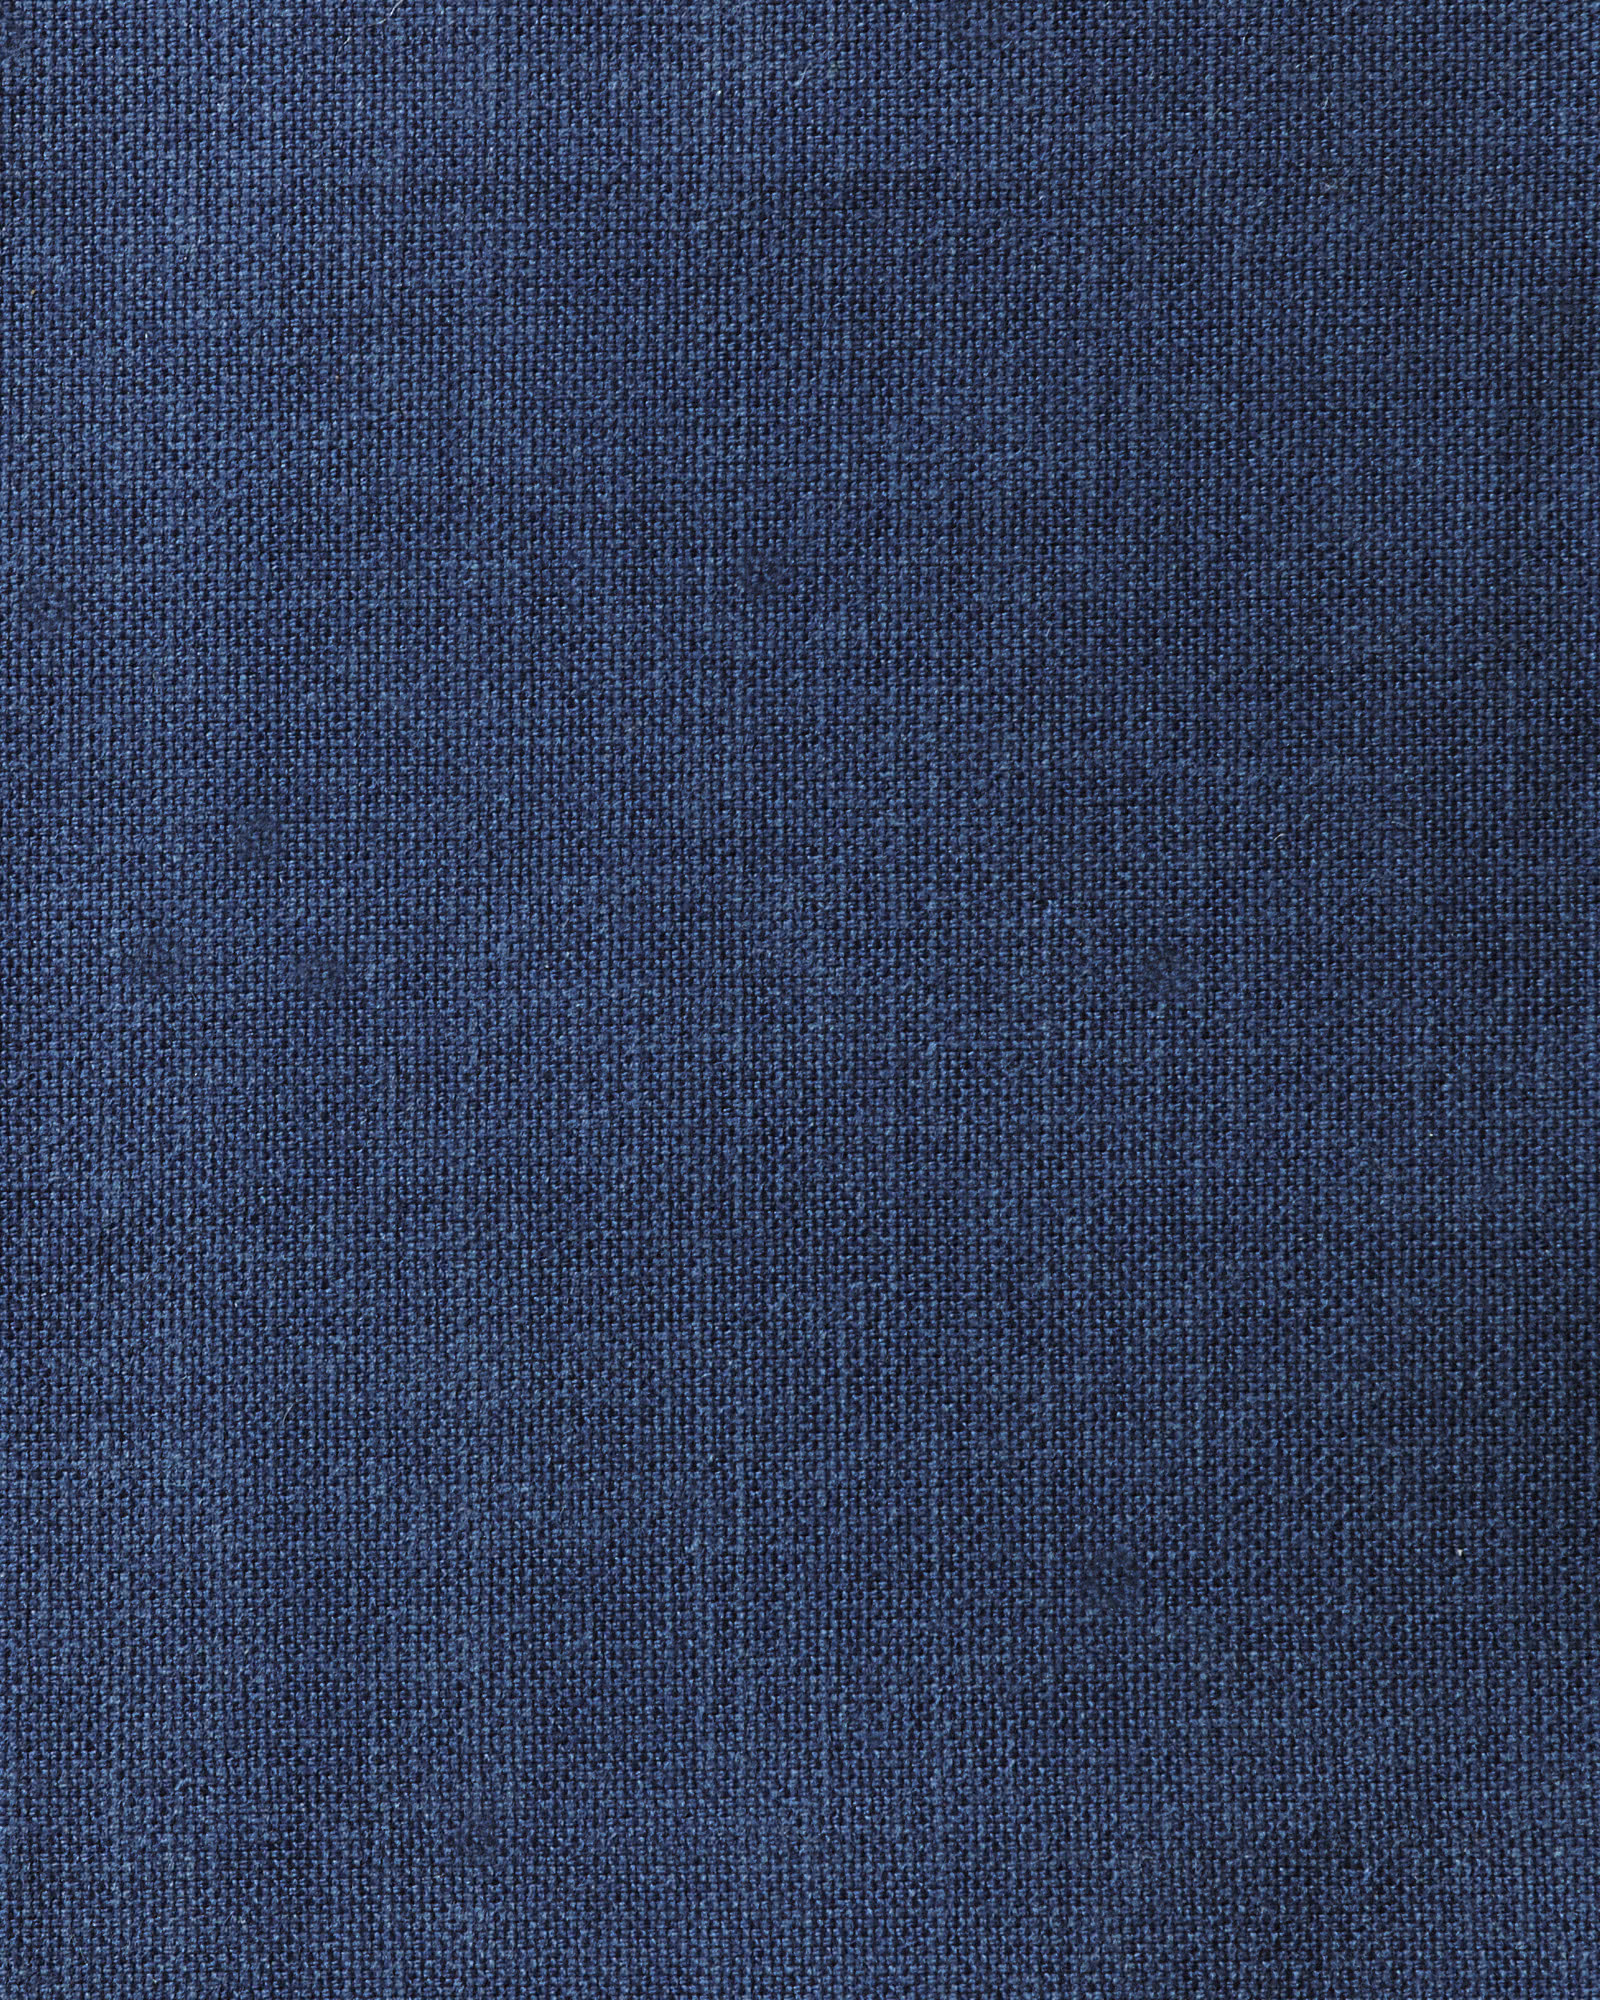 Brushed Cotton Canvas - Denim